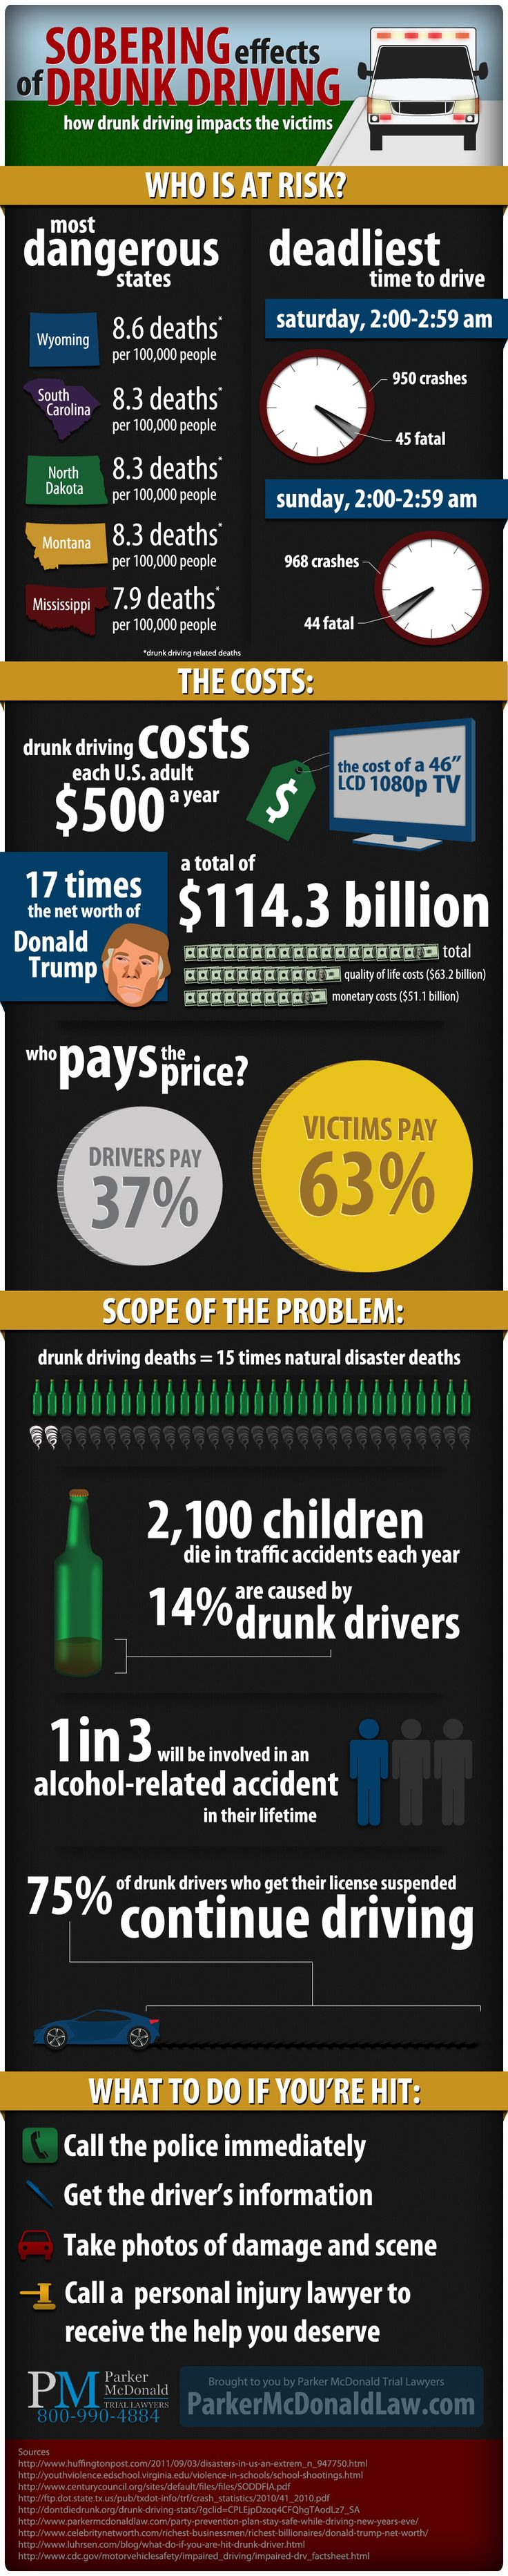 best drunk driving images distracted driving  sobering effects of drunk driving